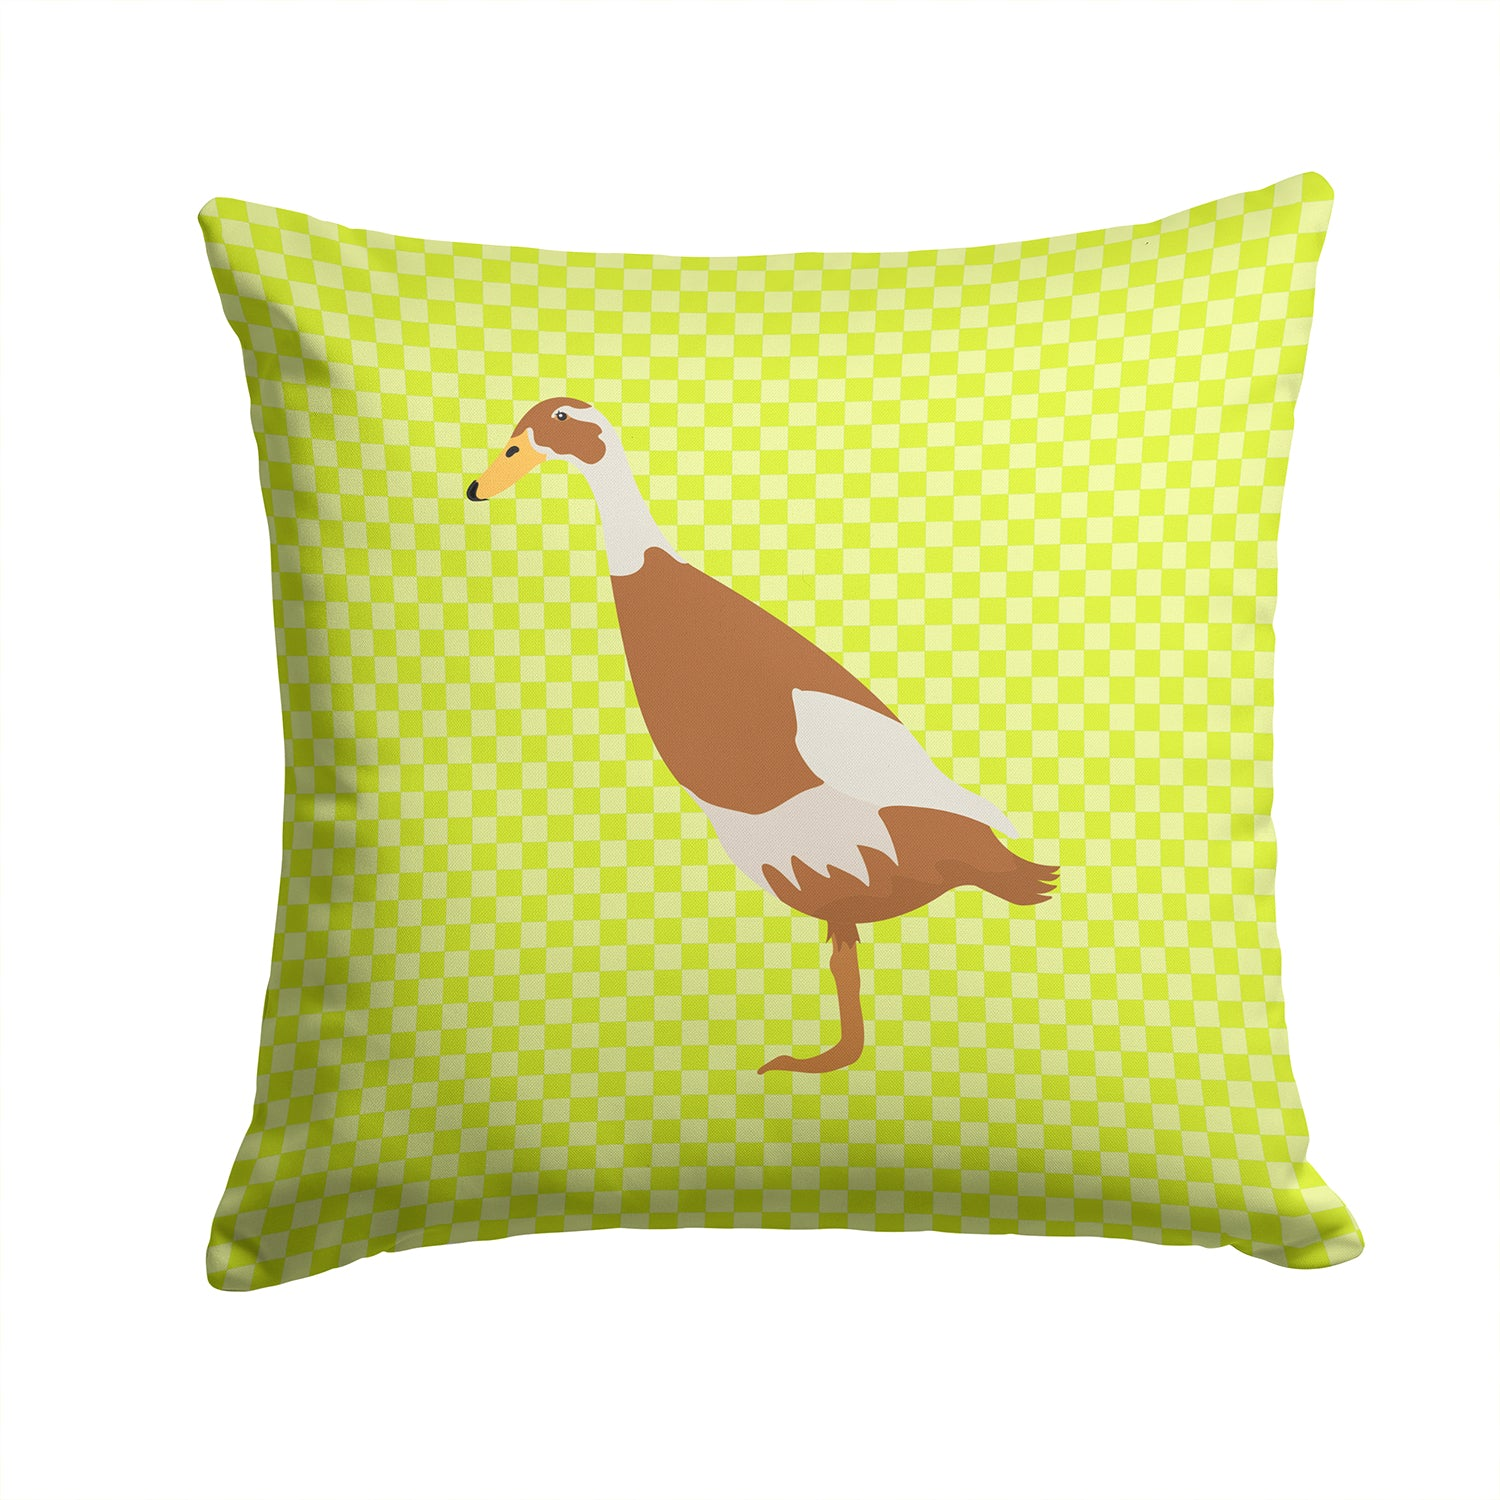 Indian Runner Duck Green Fabric Decorative Pillow BB7691PW1414 by Caroline's Treasures